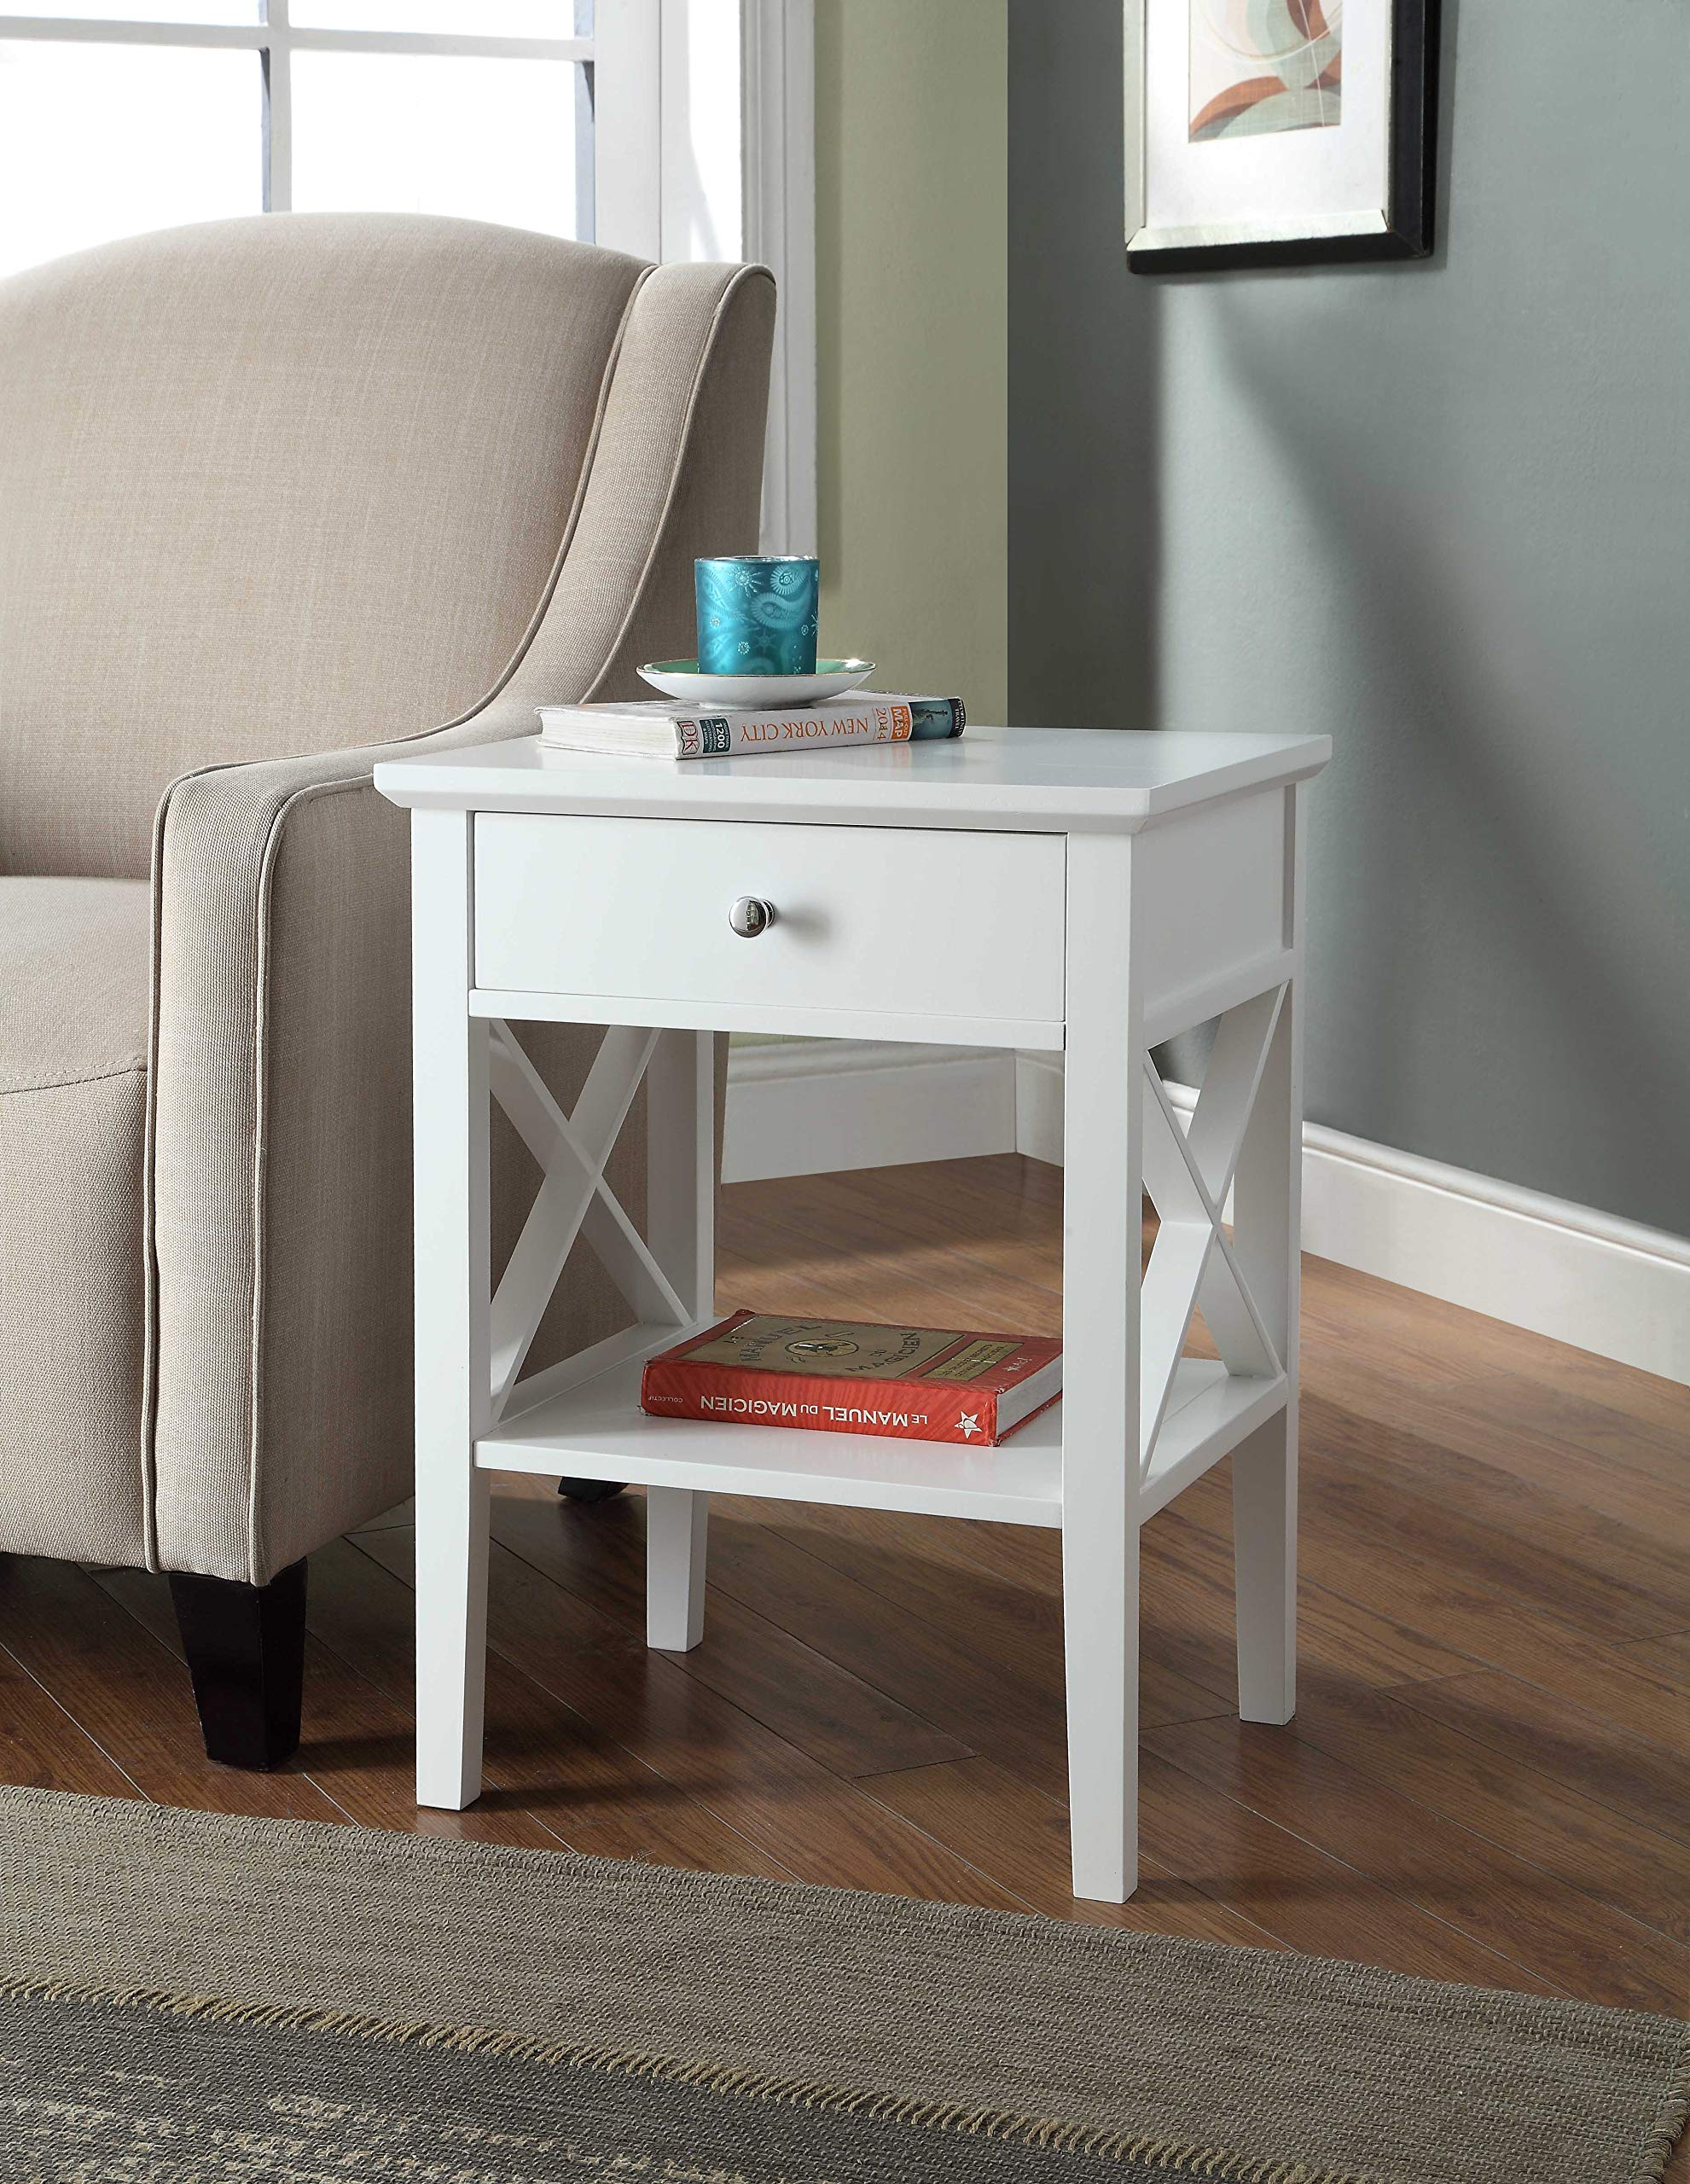 White Finish X-Design Contemporary Nightstand Side End Table Bedroom with Drawer - Color: White Material: MDF/Hardwood Comes with one drawer for extra storage - bedroom-furniture, nightstands, bedroom - 91eKBawzs1L -